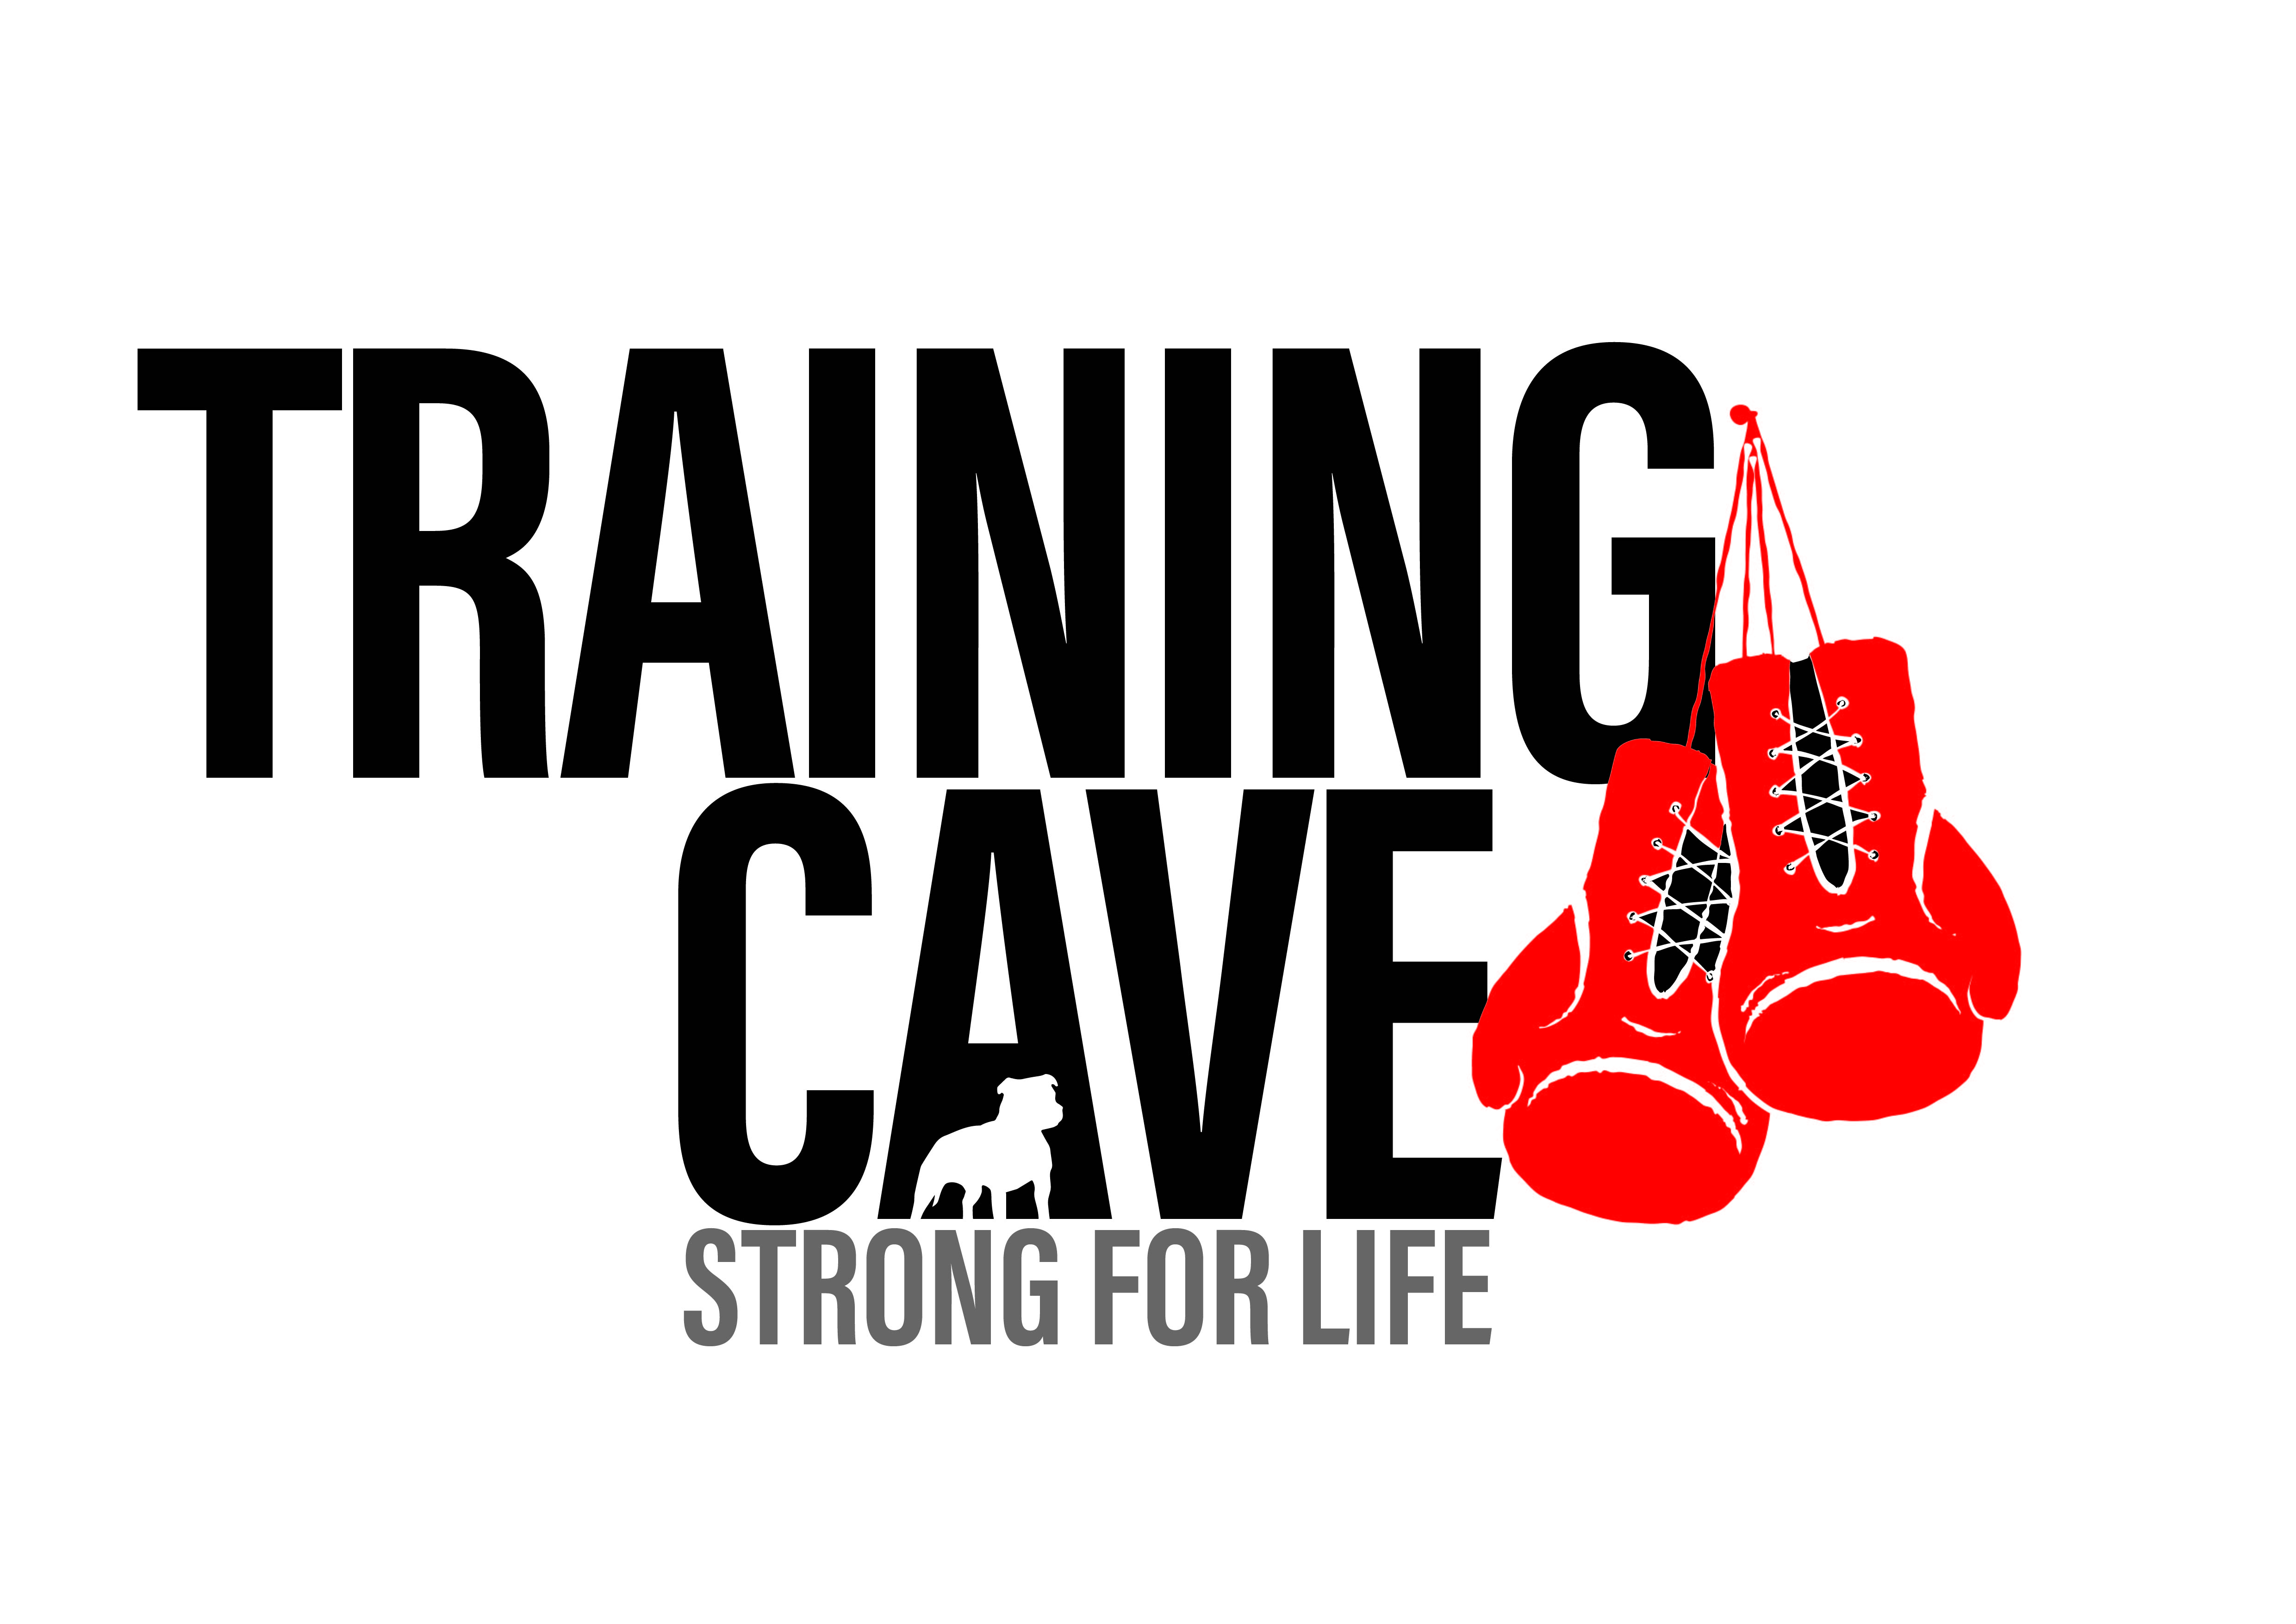 Training Cave Values